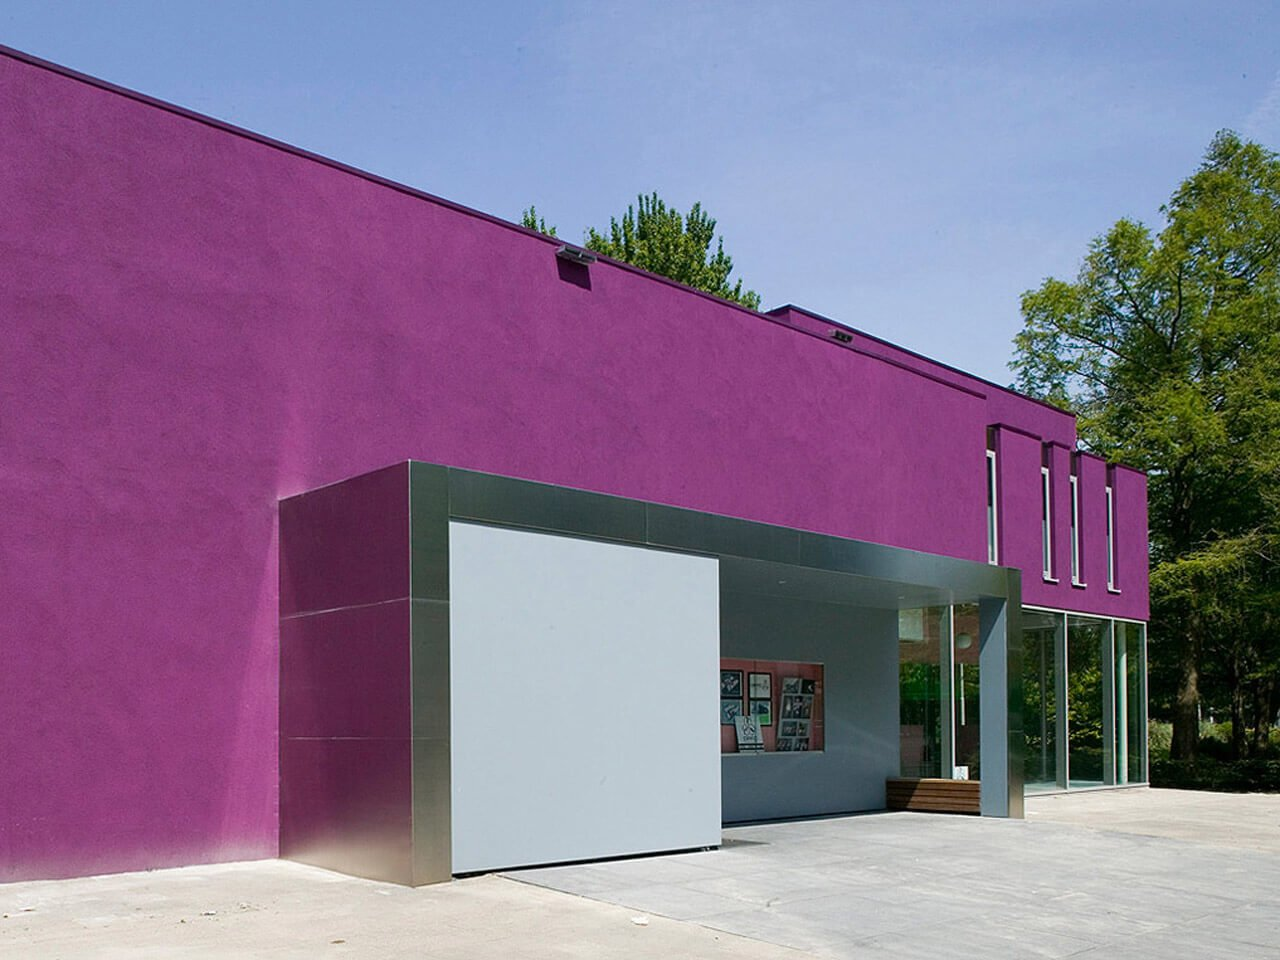 The main entrance: purple stucco and stainless steel!